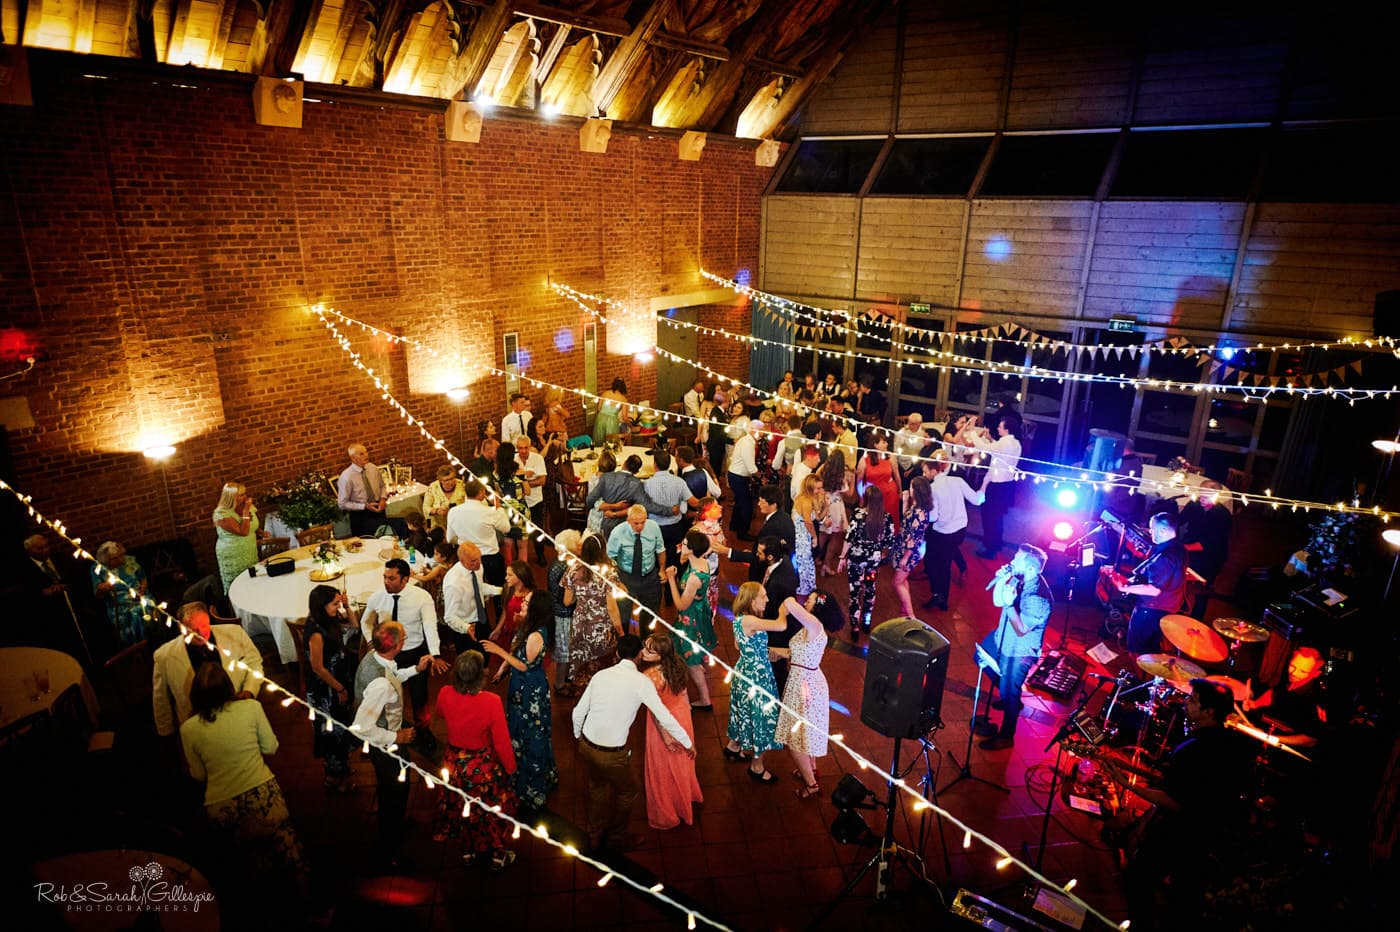 Avoncroft Museum evening wedding reception with guests dancing to live band